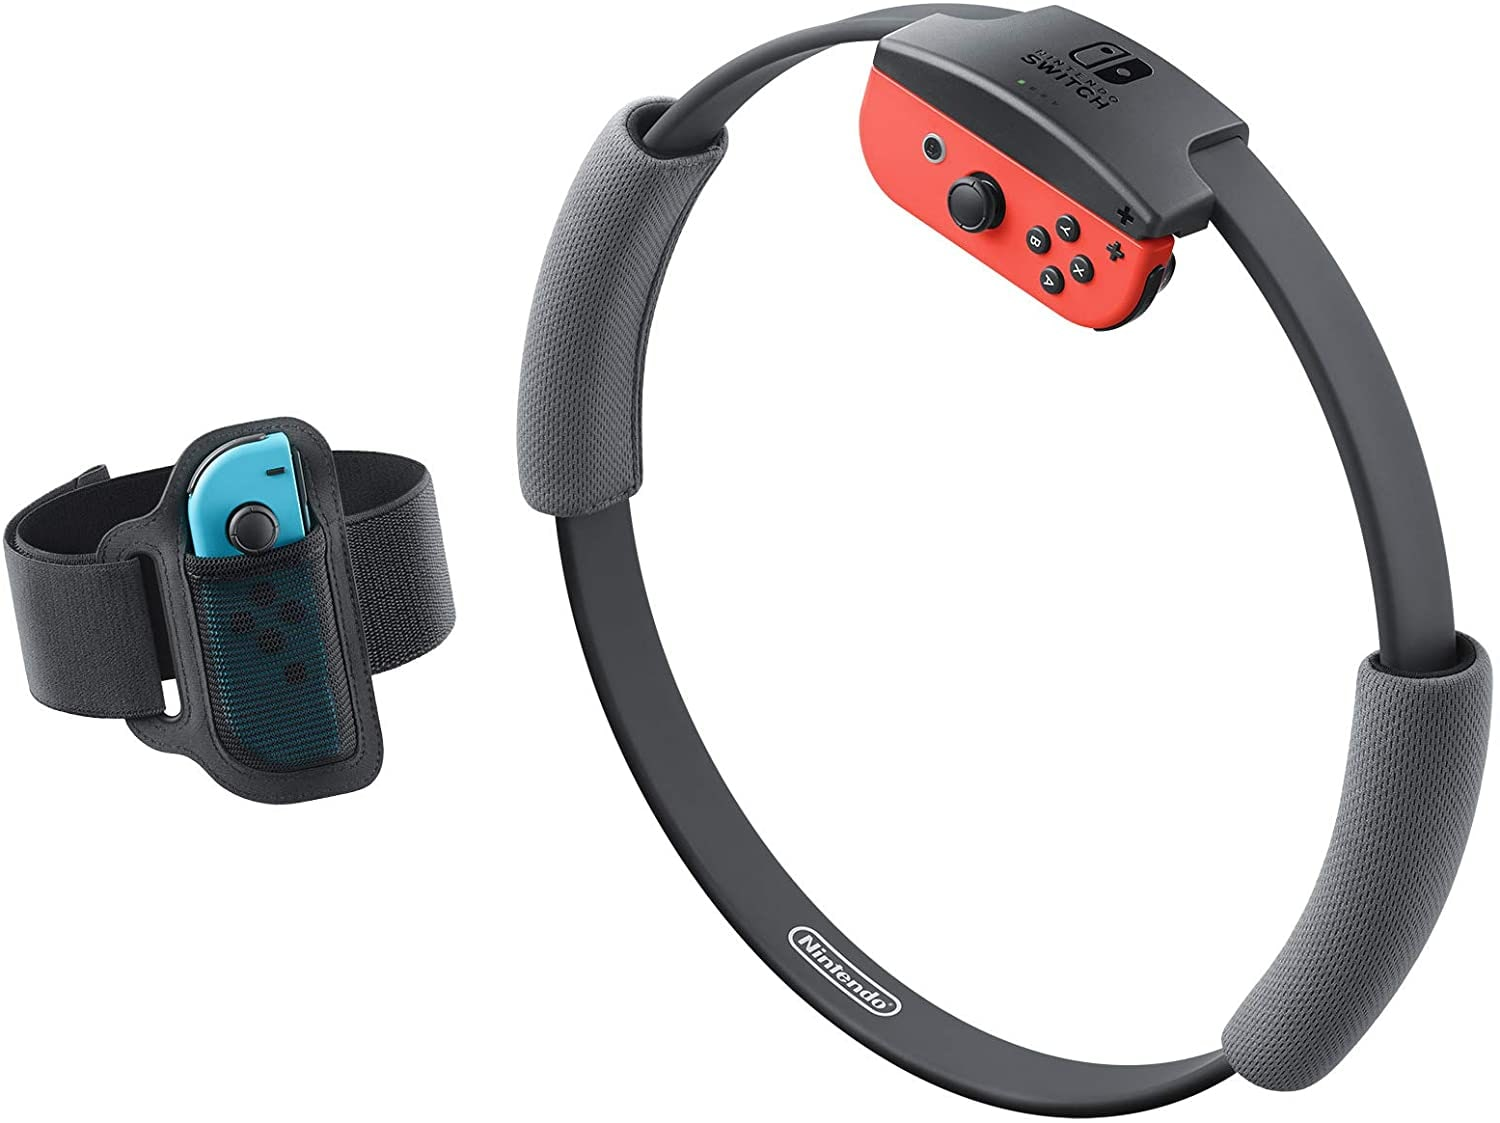 Nintendo Switch without Games FItness Ring Set Fit Adventure Ring Fit Exercise Yoga Ring+Leg Band Black - 3